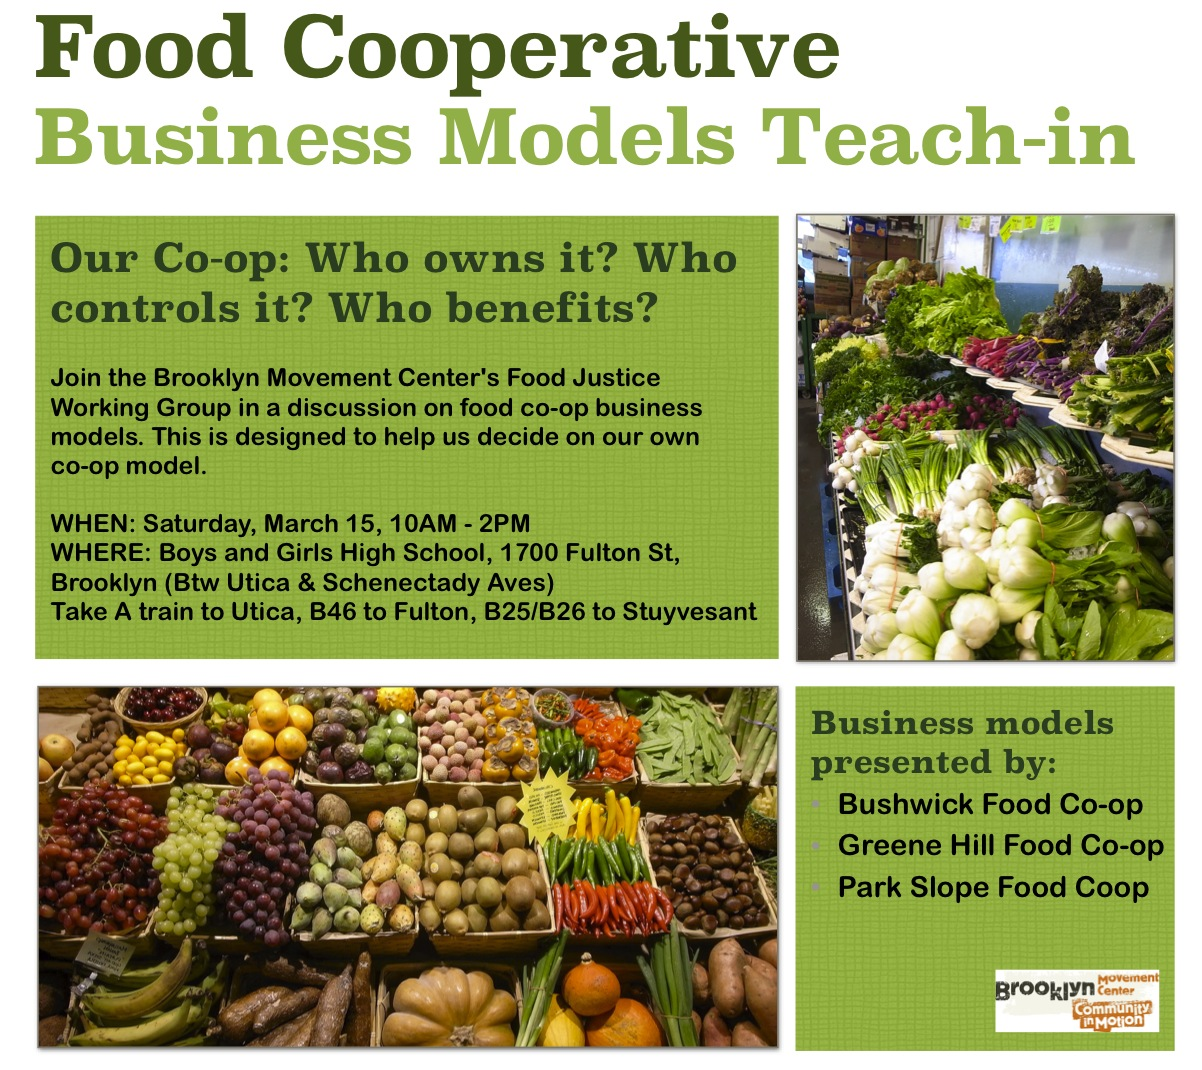 Food_Coop_Teach-in_FINAL.jpg